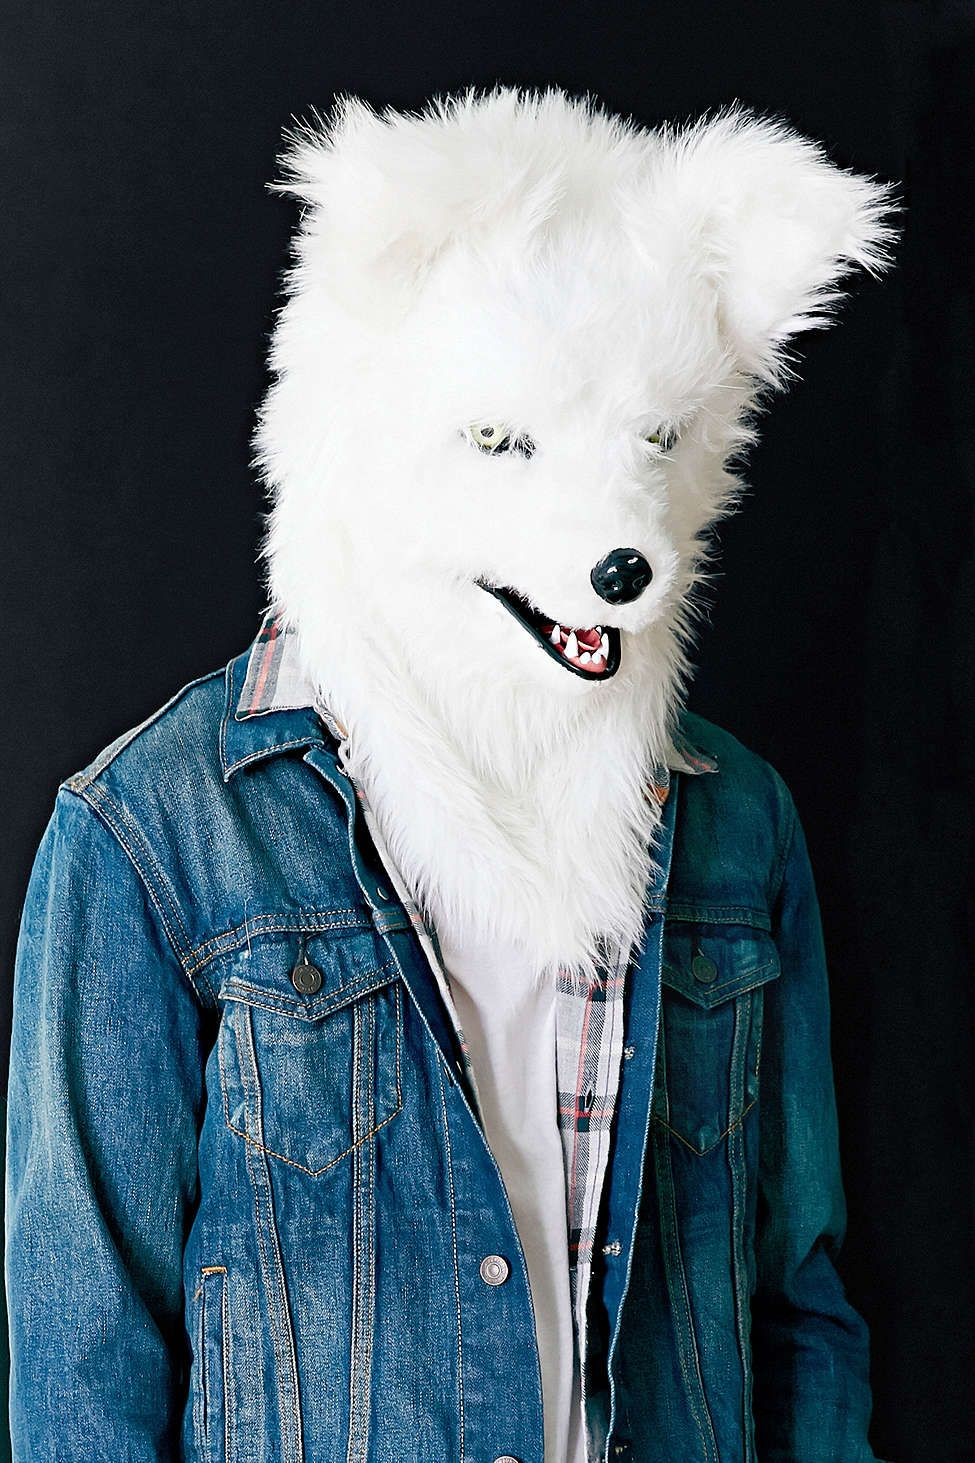 Talking White Wolf Mask...whaaaaaaaat??? why? | Ha! | Pinterest ...